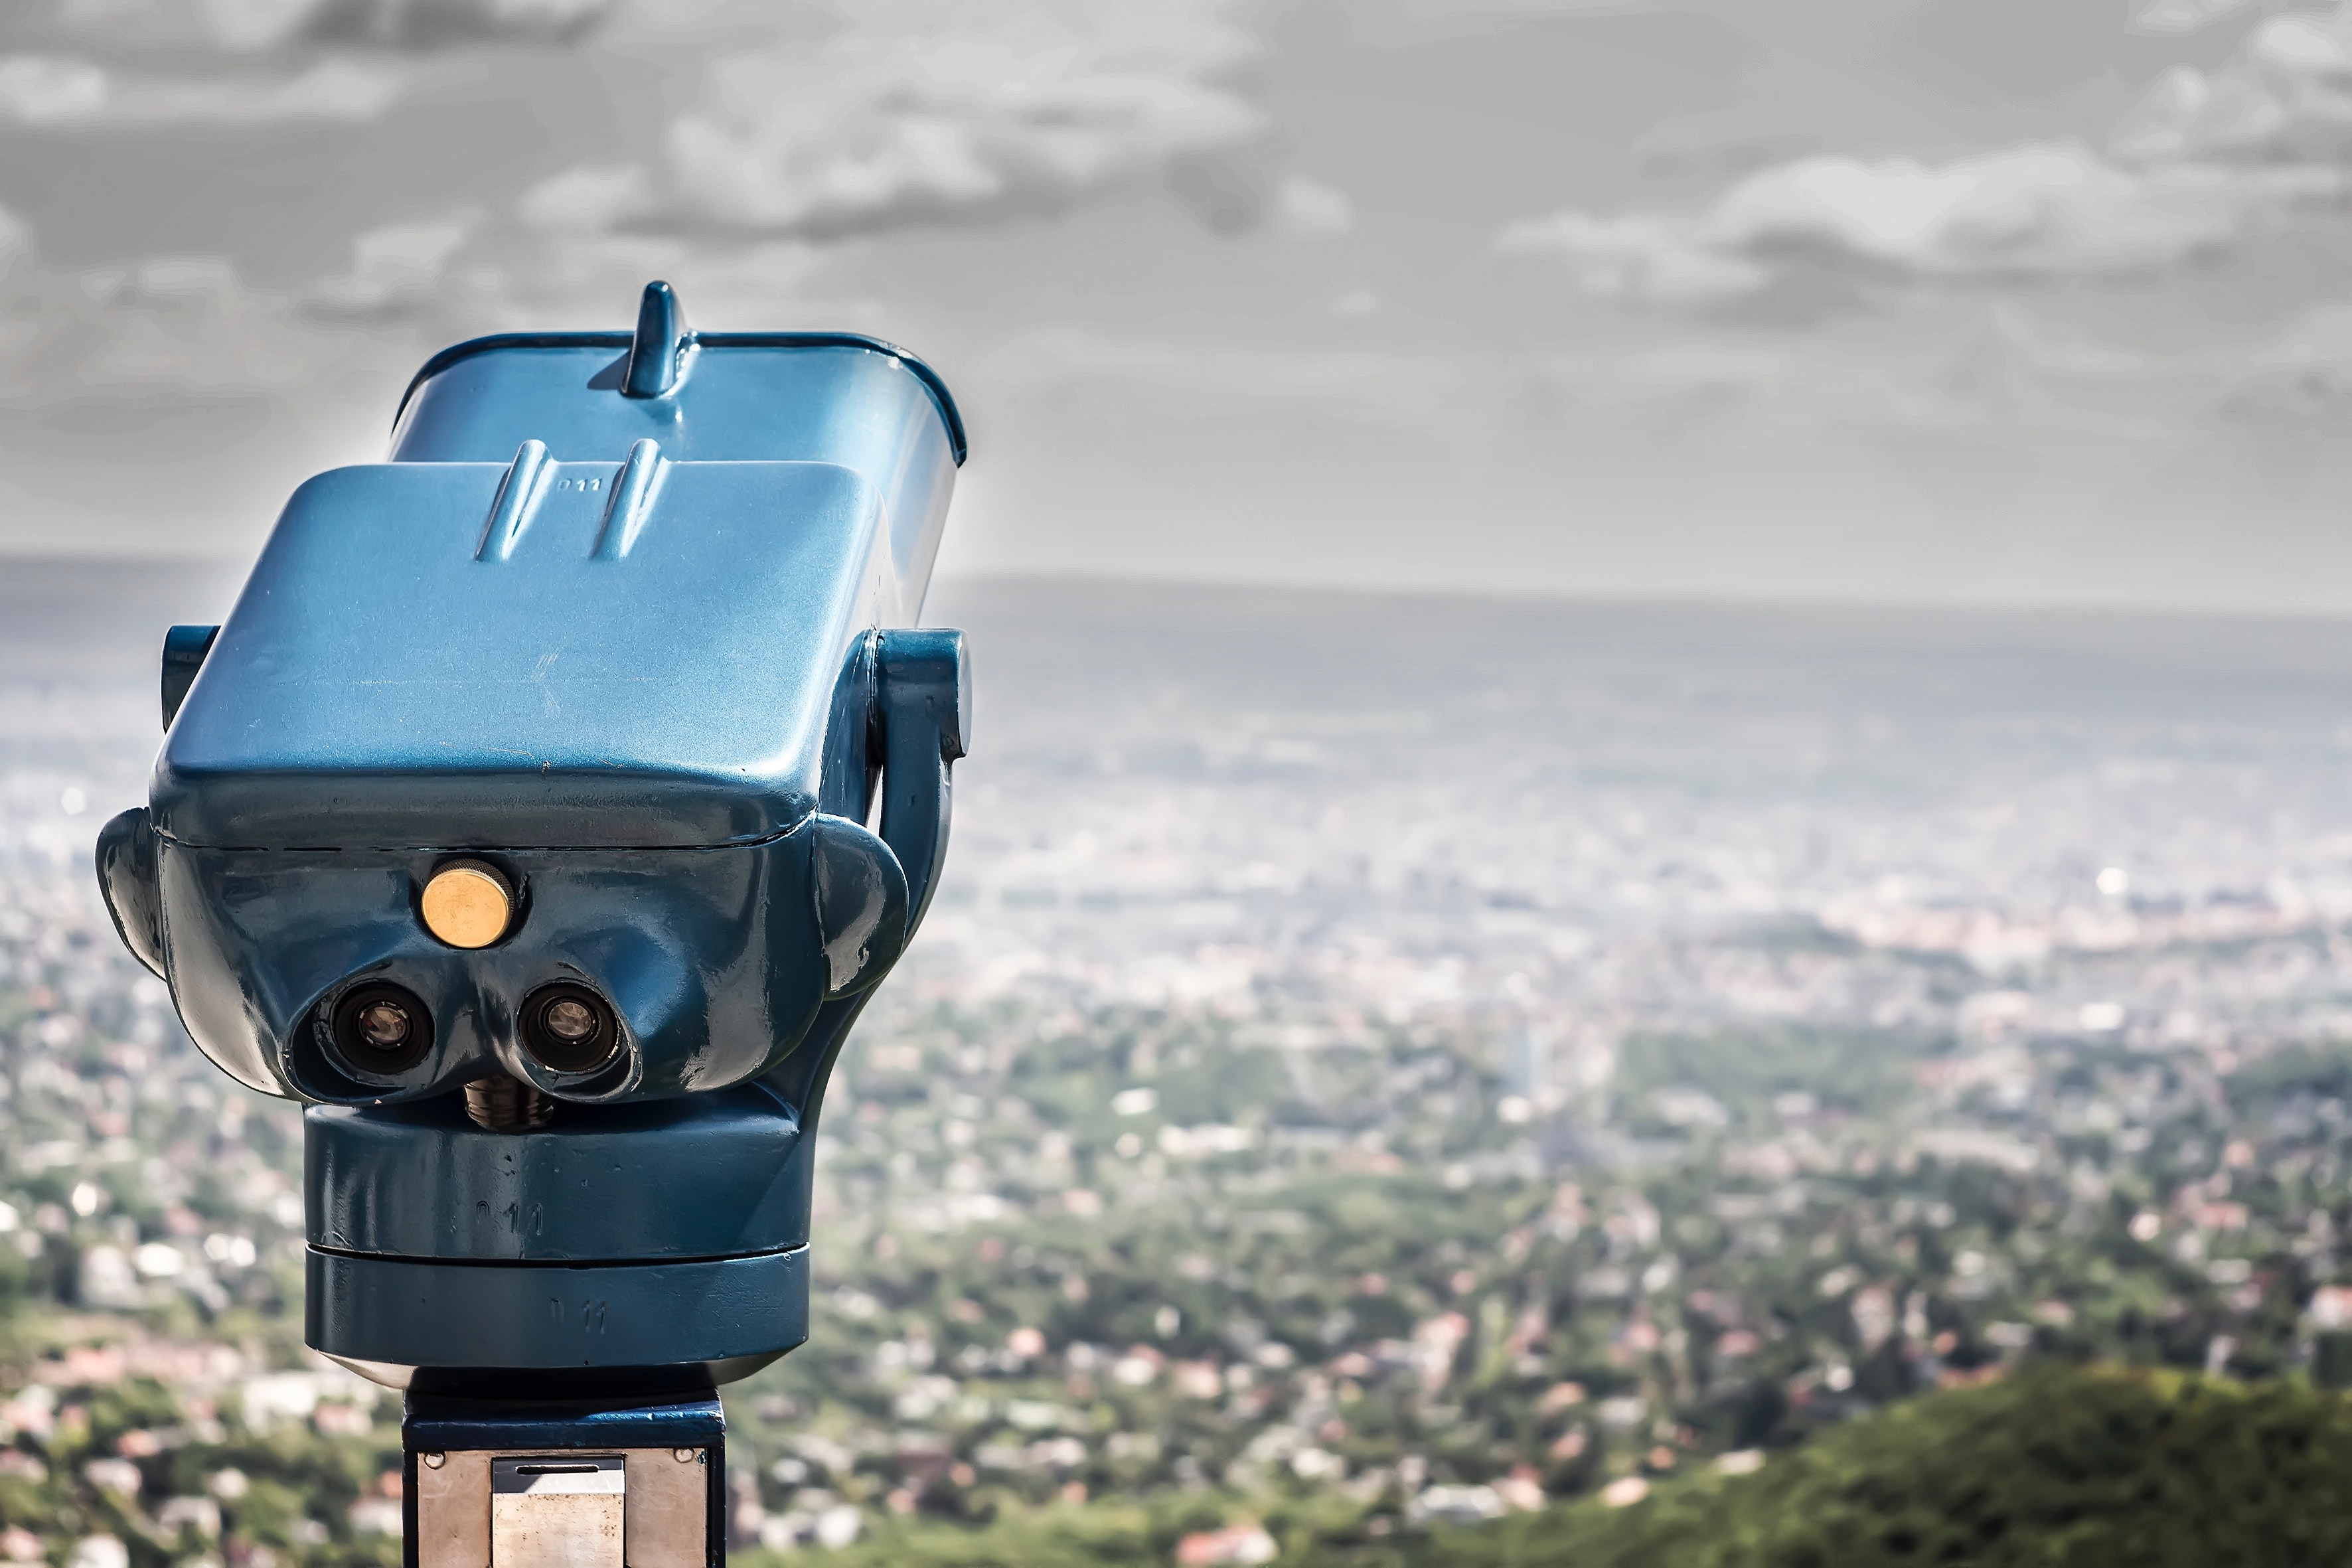 Blue Coin Operated Binocular With City View During Daytime